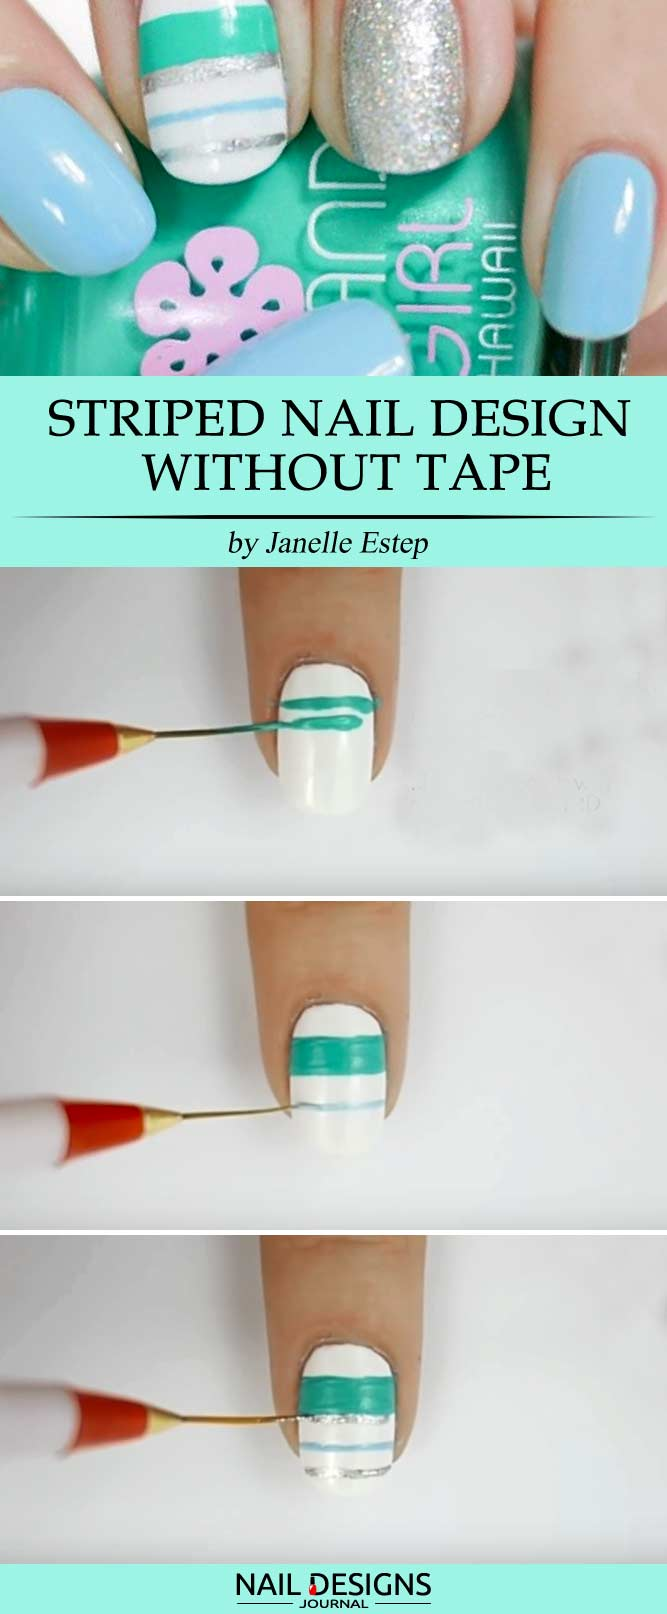 Striped nail design without the tape